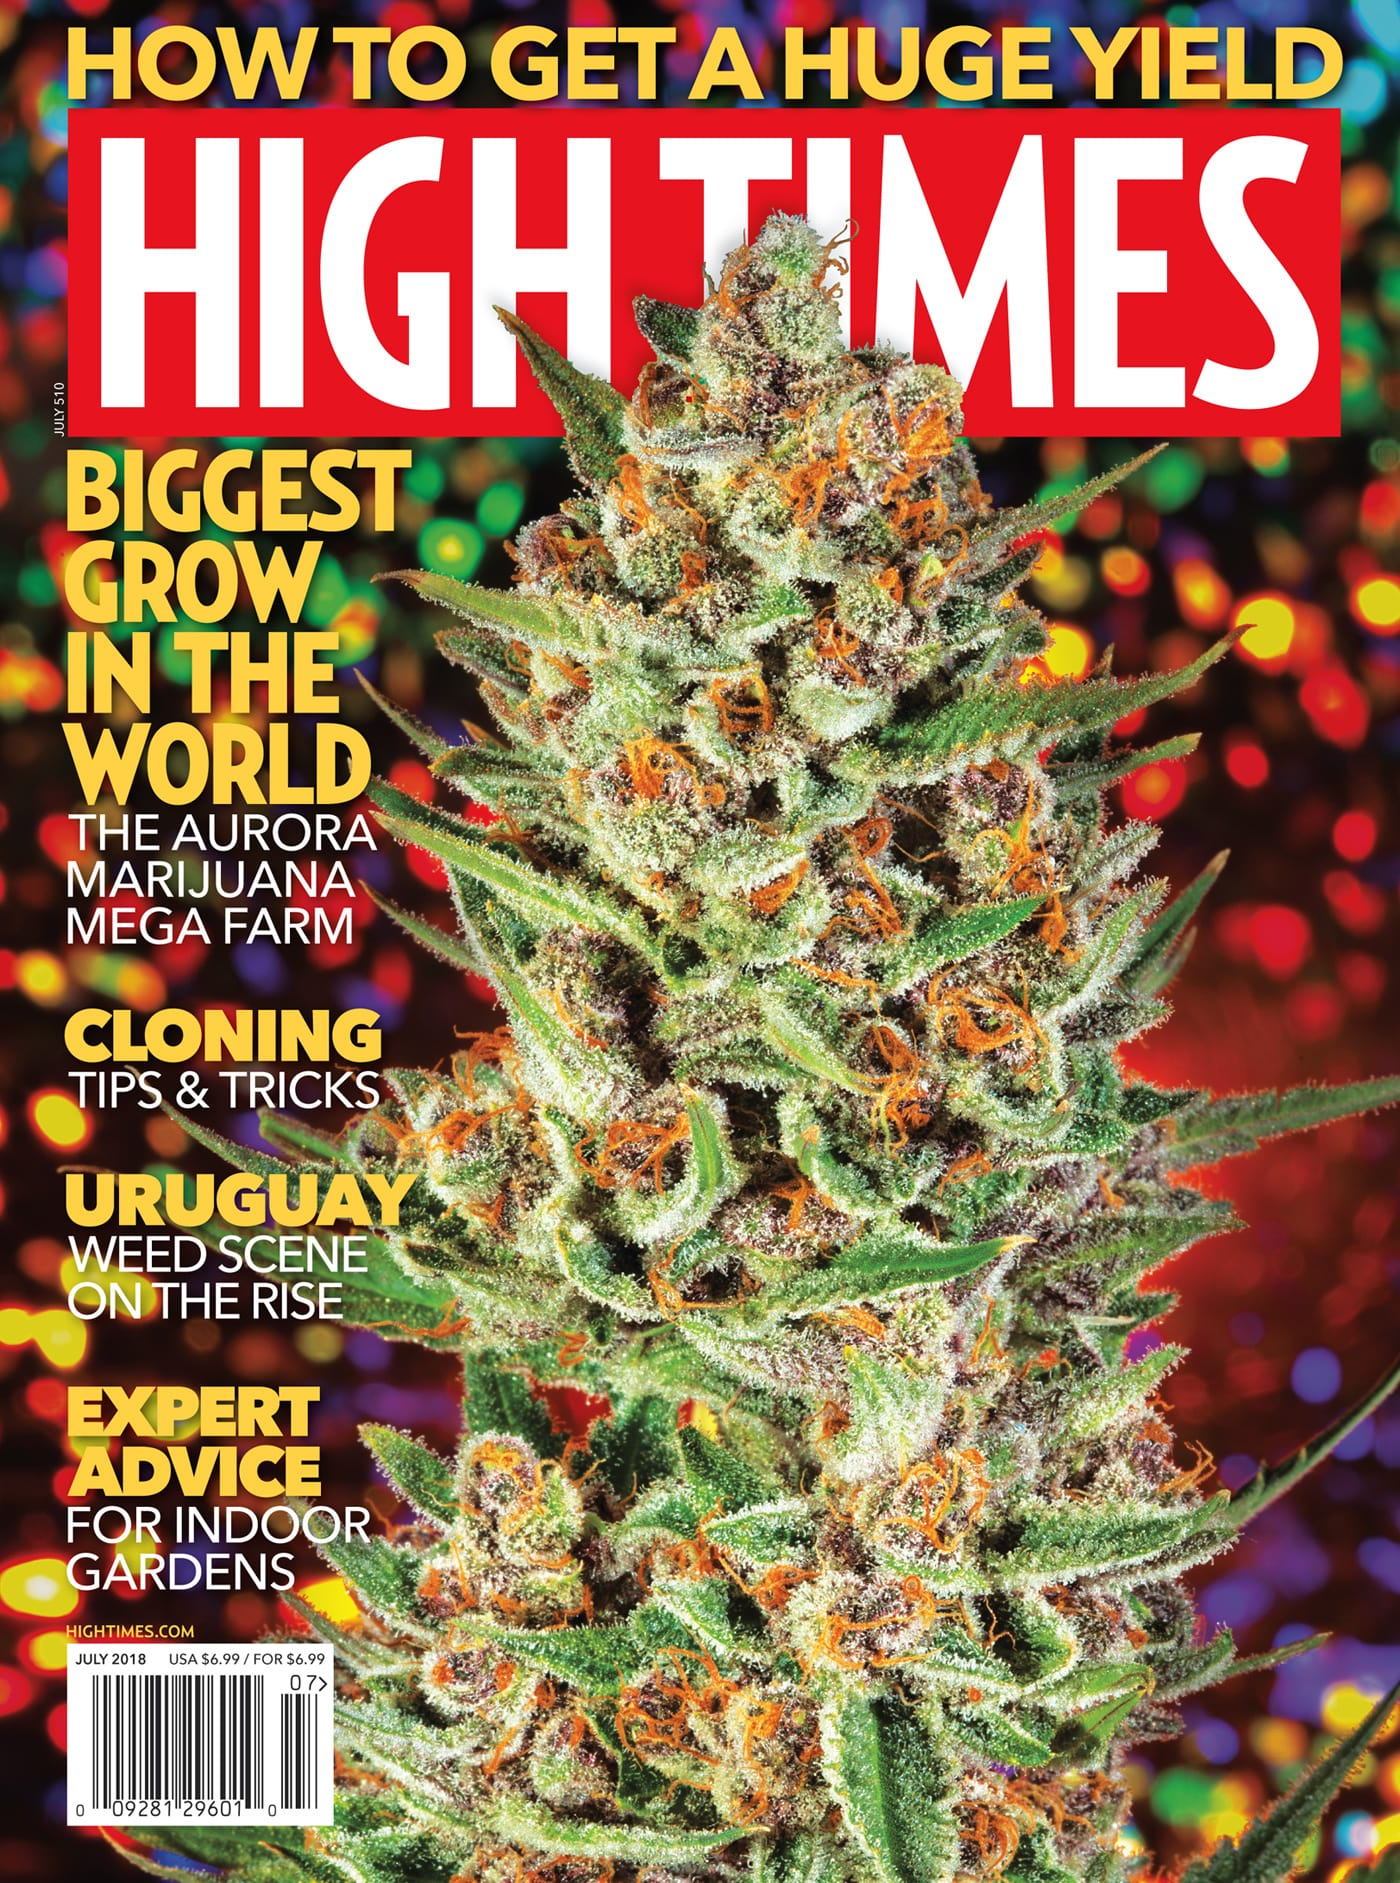 HIGH TIMES Magazine July 2018 - Issue 510